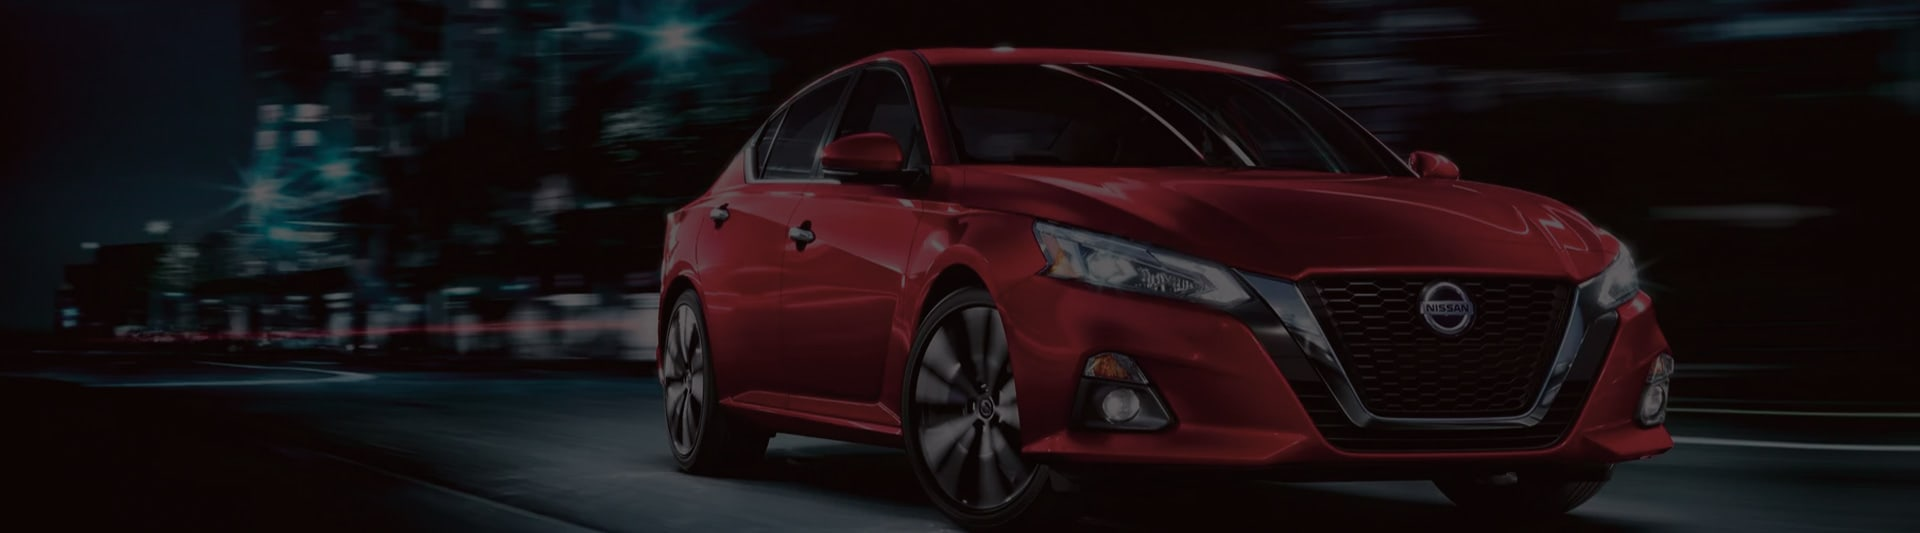 Red Nissan Altima driving through city at night